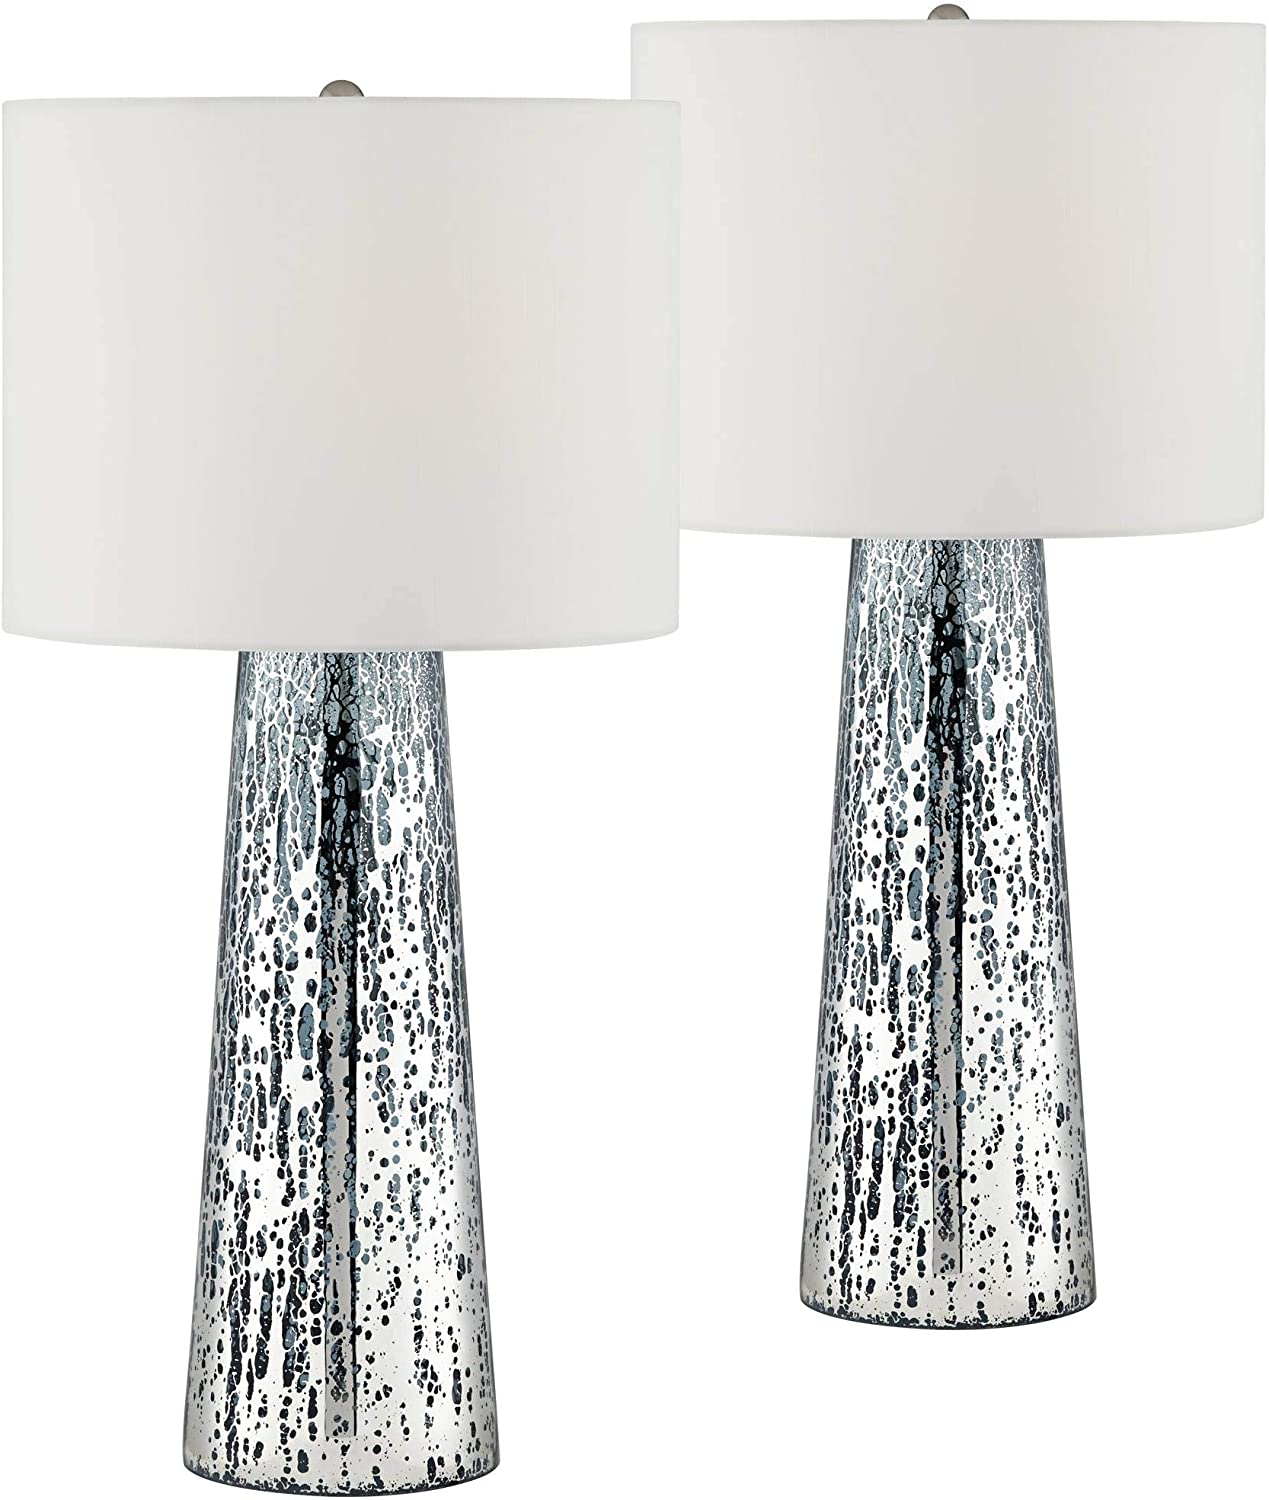 Marcus Coastal Table Lamps Set Of 2 Mercury Glass Tapered Column White Drum Shade For Living Room Family Bedroom 360 Lighting Amazon Com